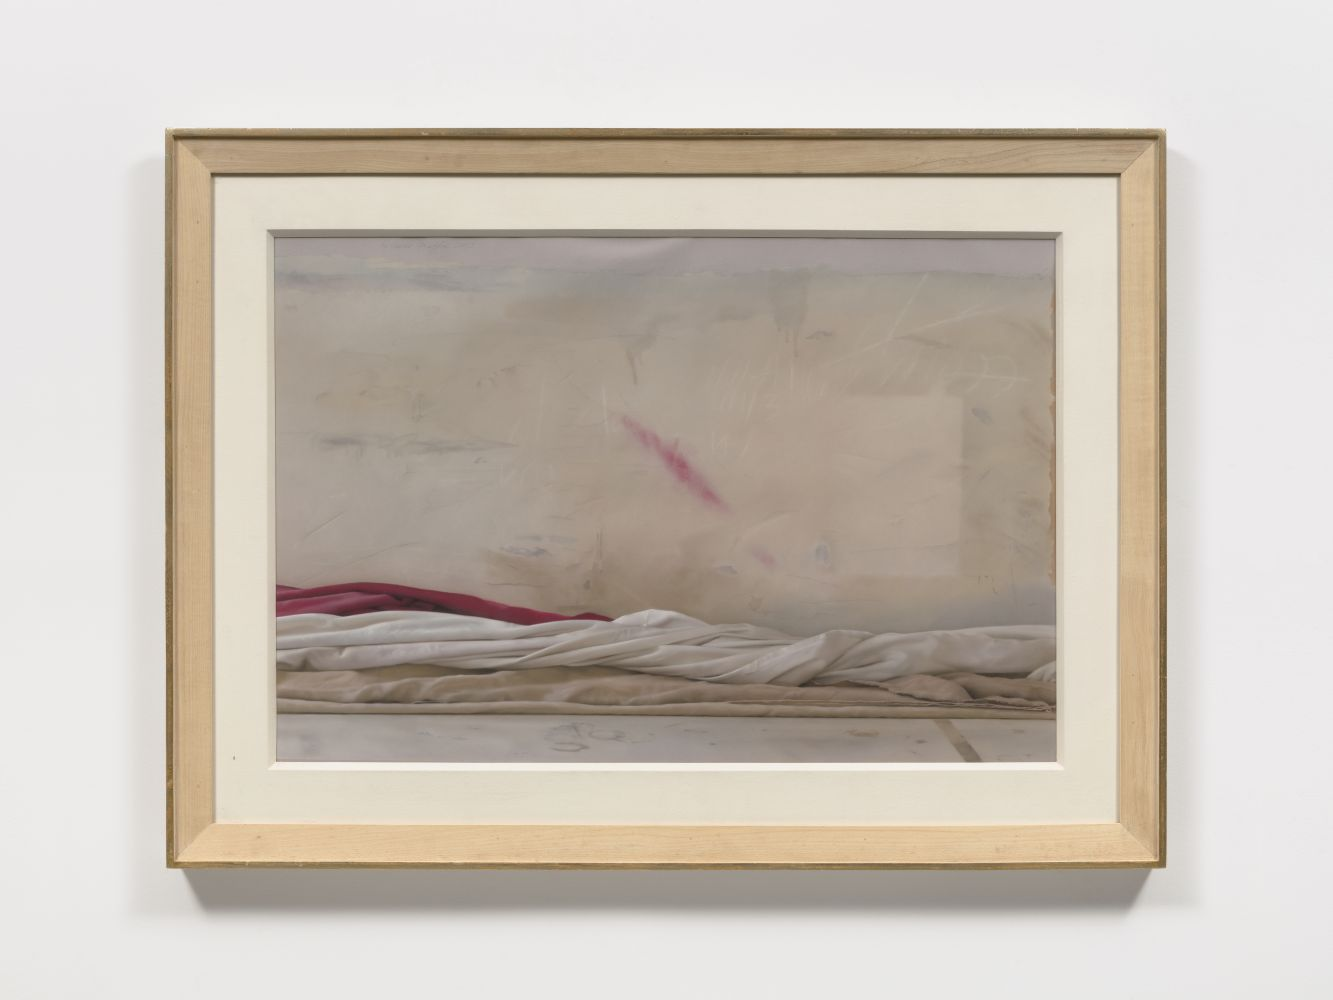 Pastel on paper work by Ricardo Maffei featuring a hyper-realistic rendering of white, beige and red cloth